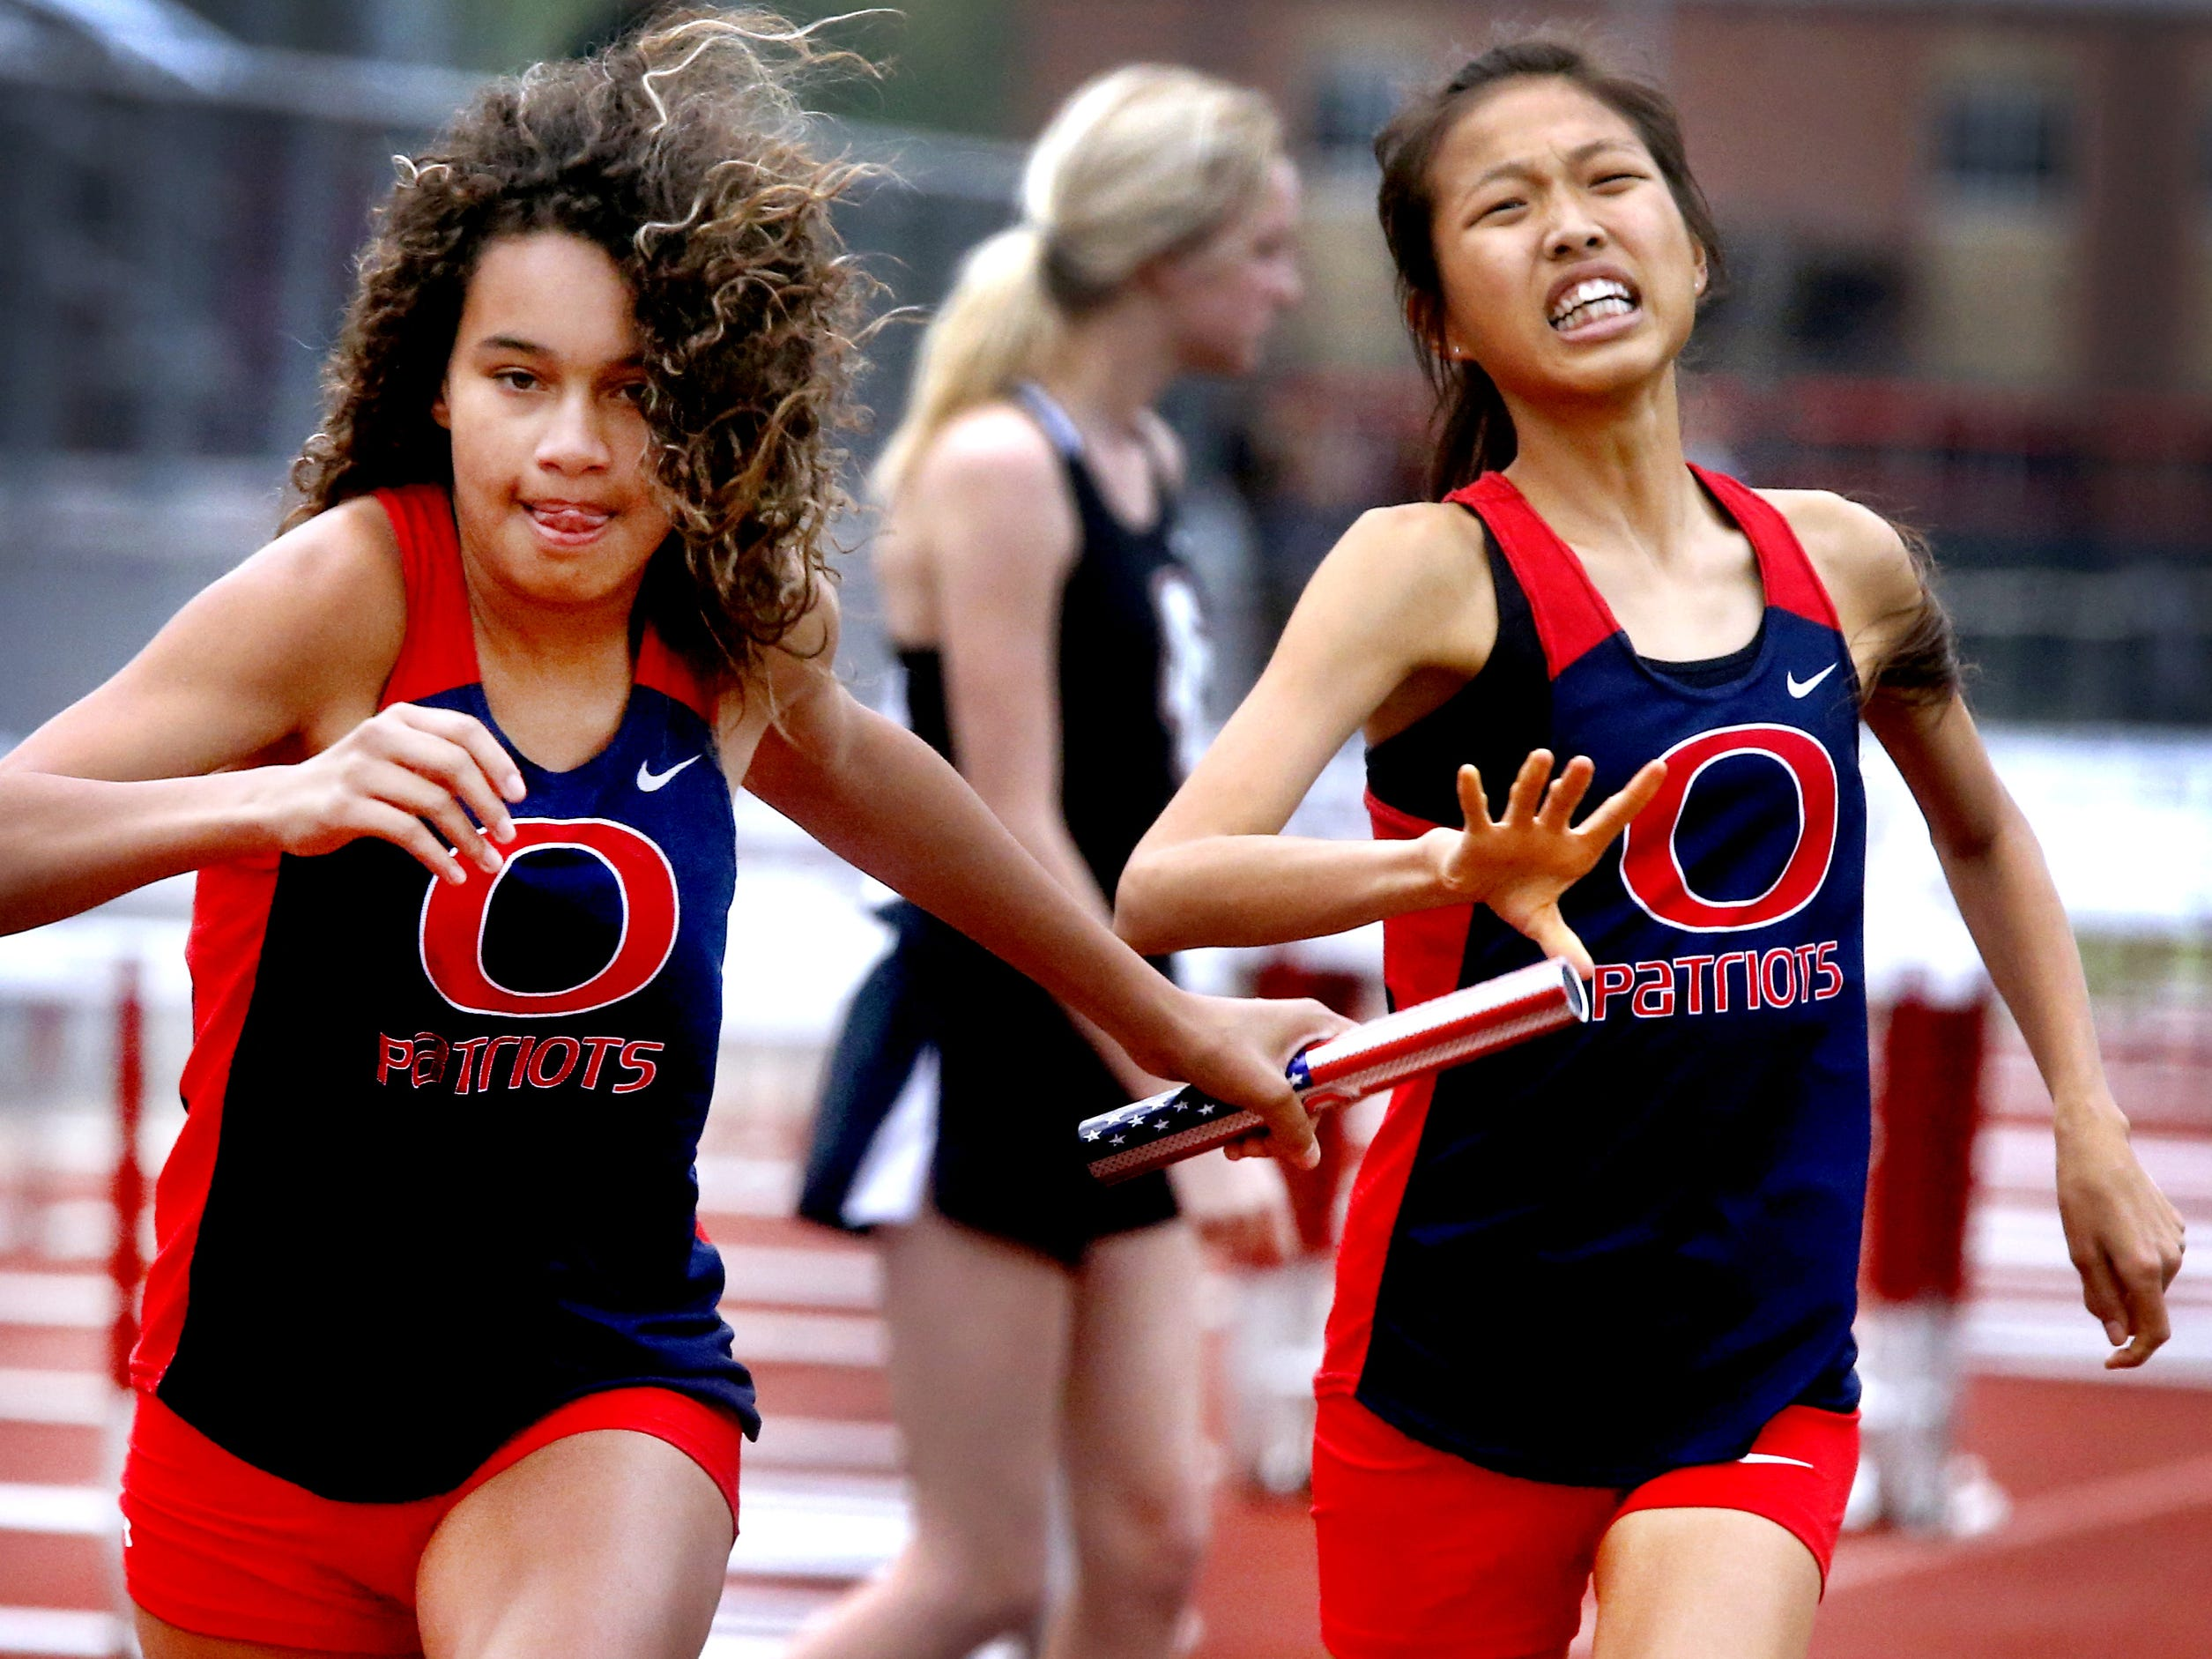 Oakland's Momo Takada, right, hands the baton off to Maja Lakes during the Girls 4x800 relay at the Rutherford County Girls Track and Field Championship at Stewarts Creek on Tuesday April 24, 2018.